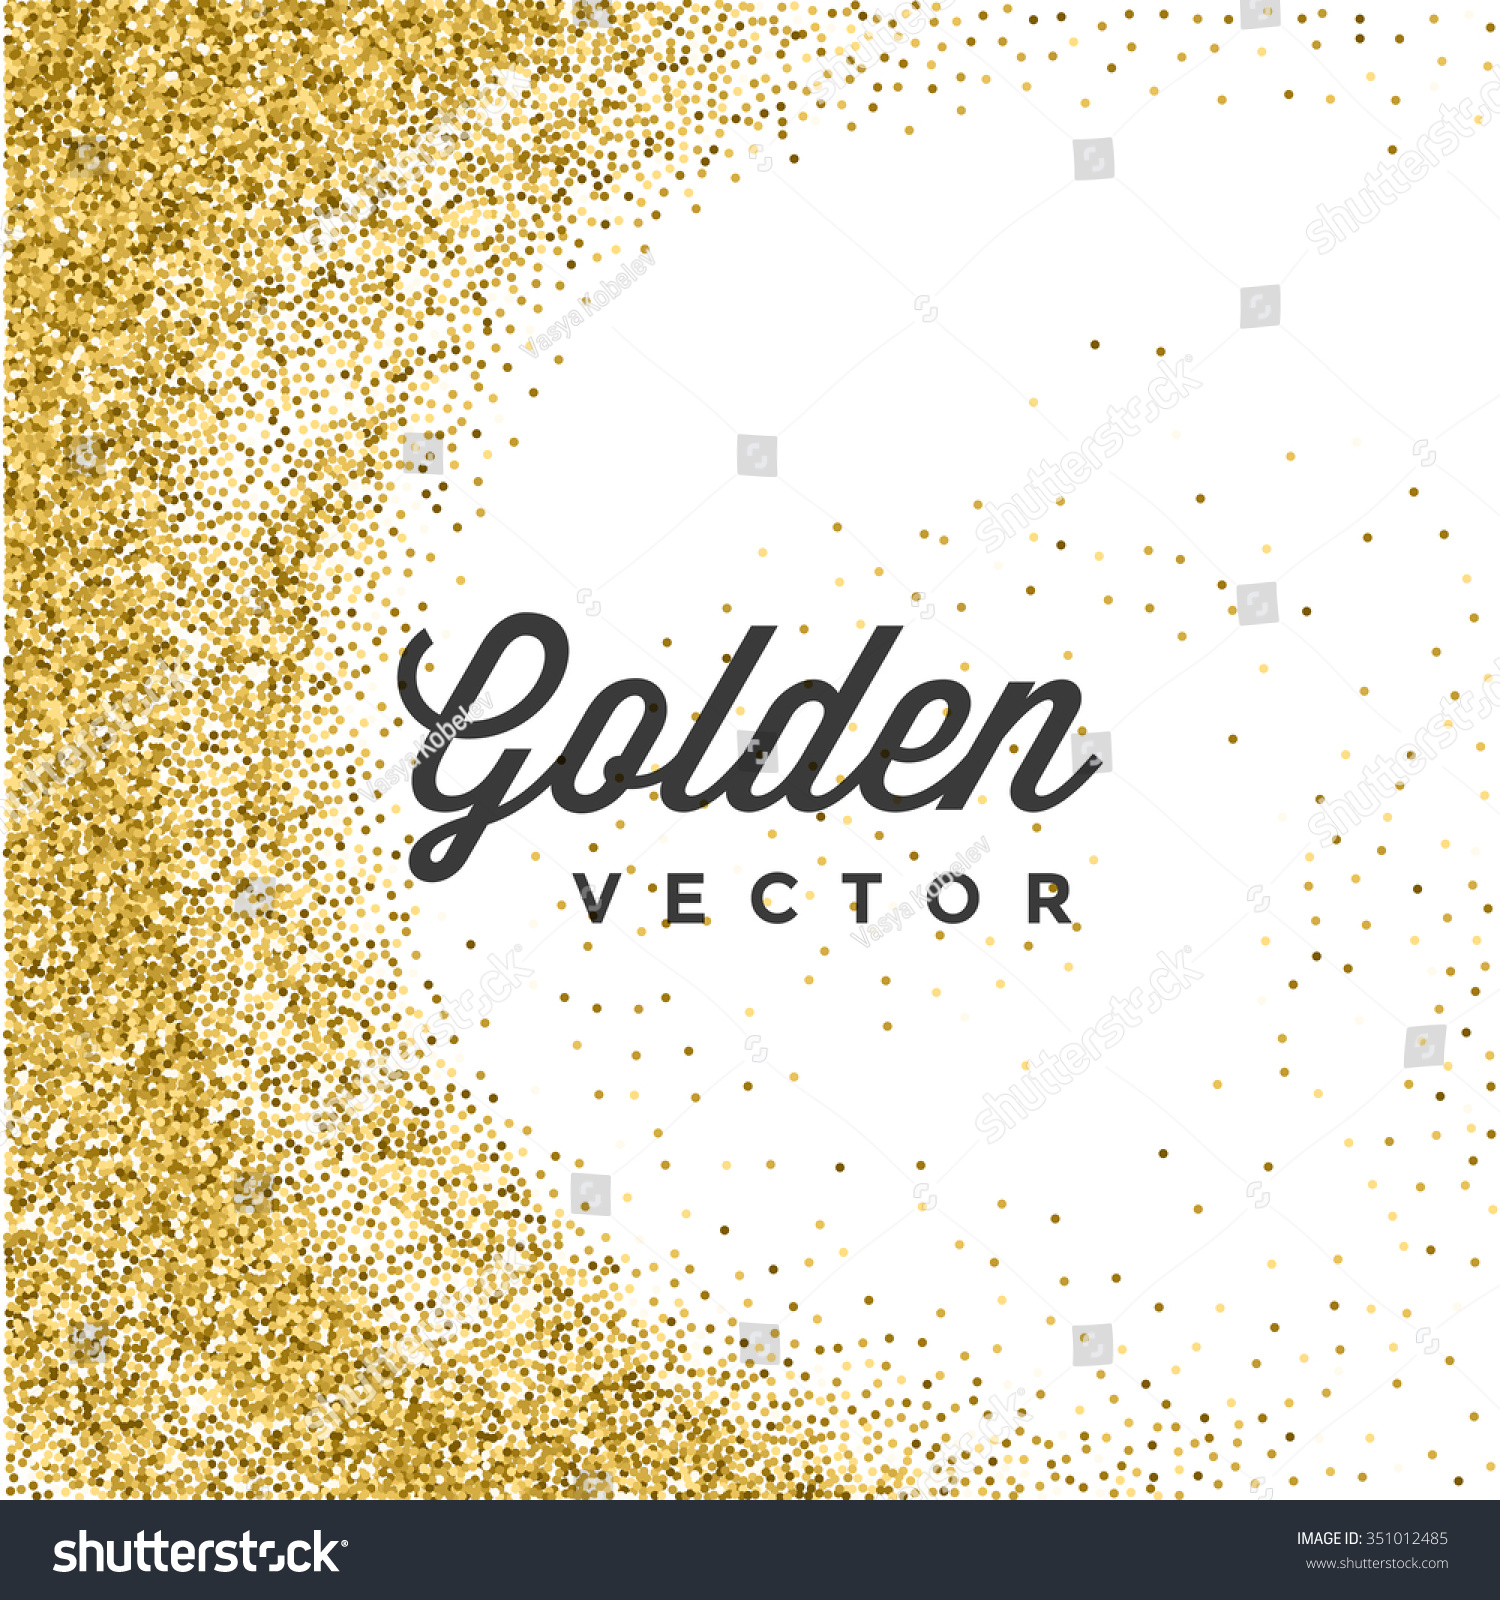 Gold glitter bright vector transparent background golden sparkles - Gold Glitter Sparkles Bright Confetti White Vector Background Good For Greeting Gold Cards Luxury